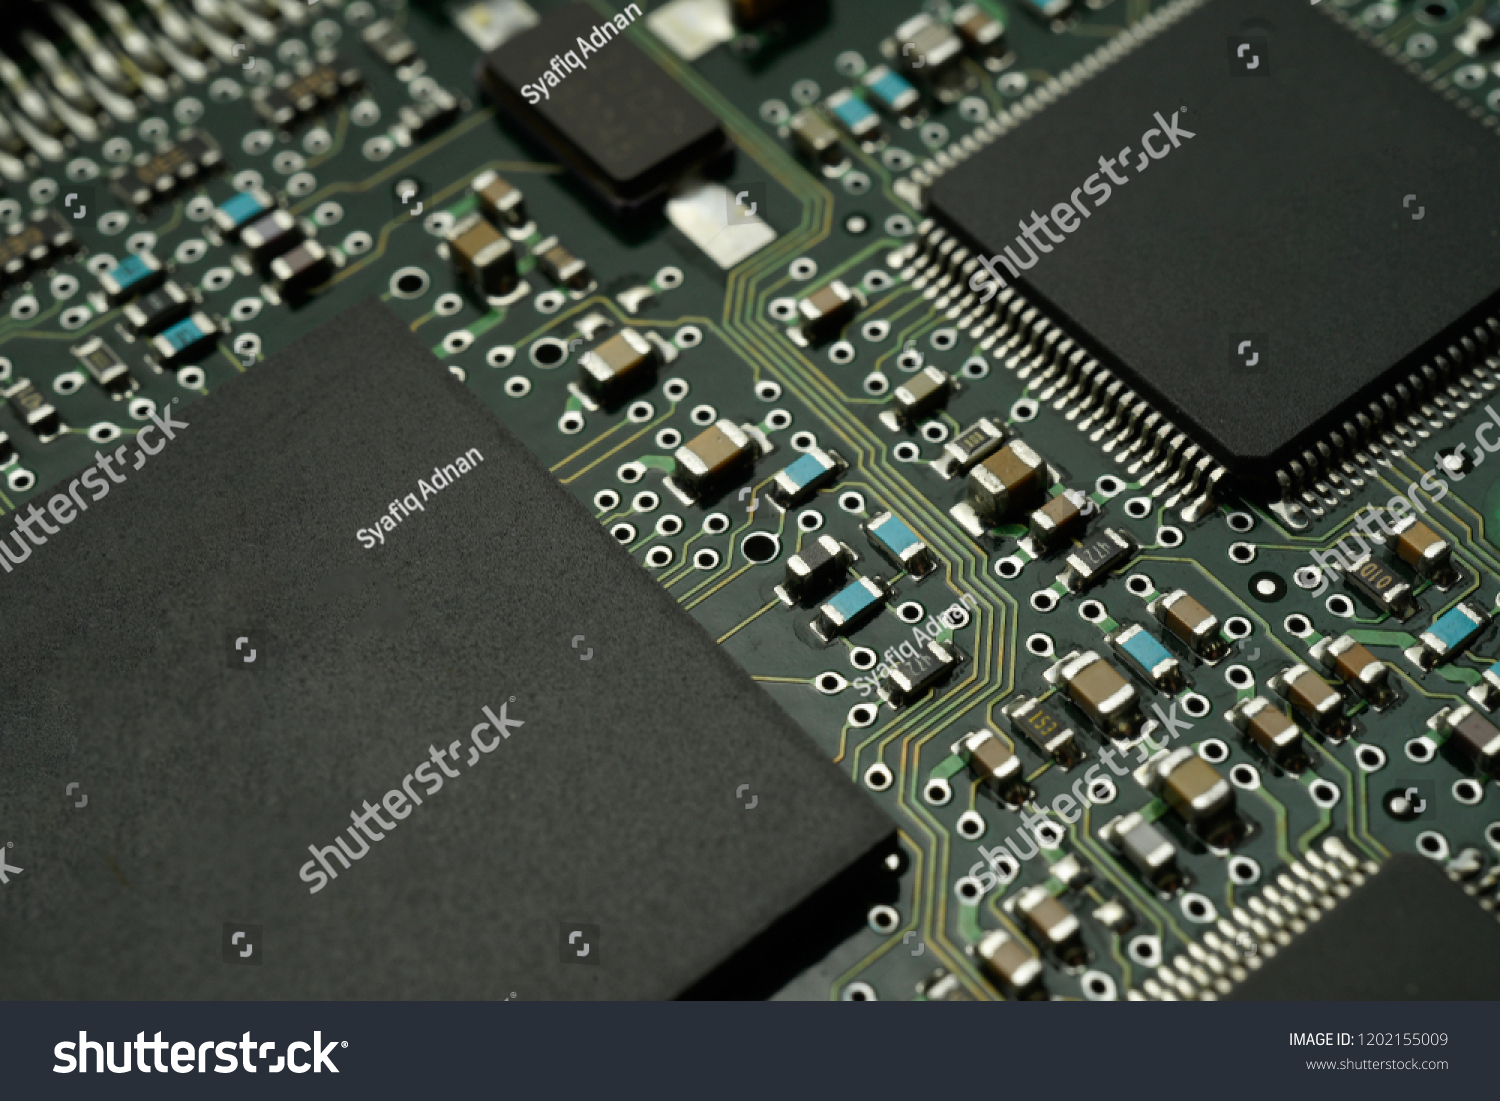 Printed Circuit Board Smd Ic Mounted Stock Photo Edit Now Circuits With Part On